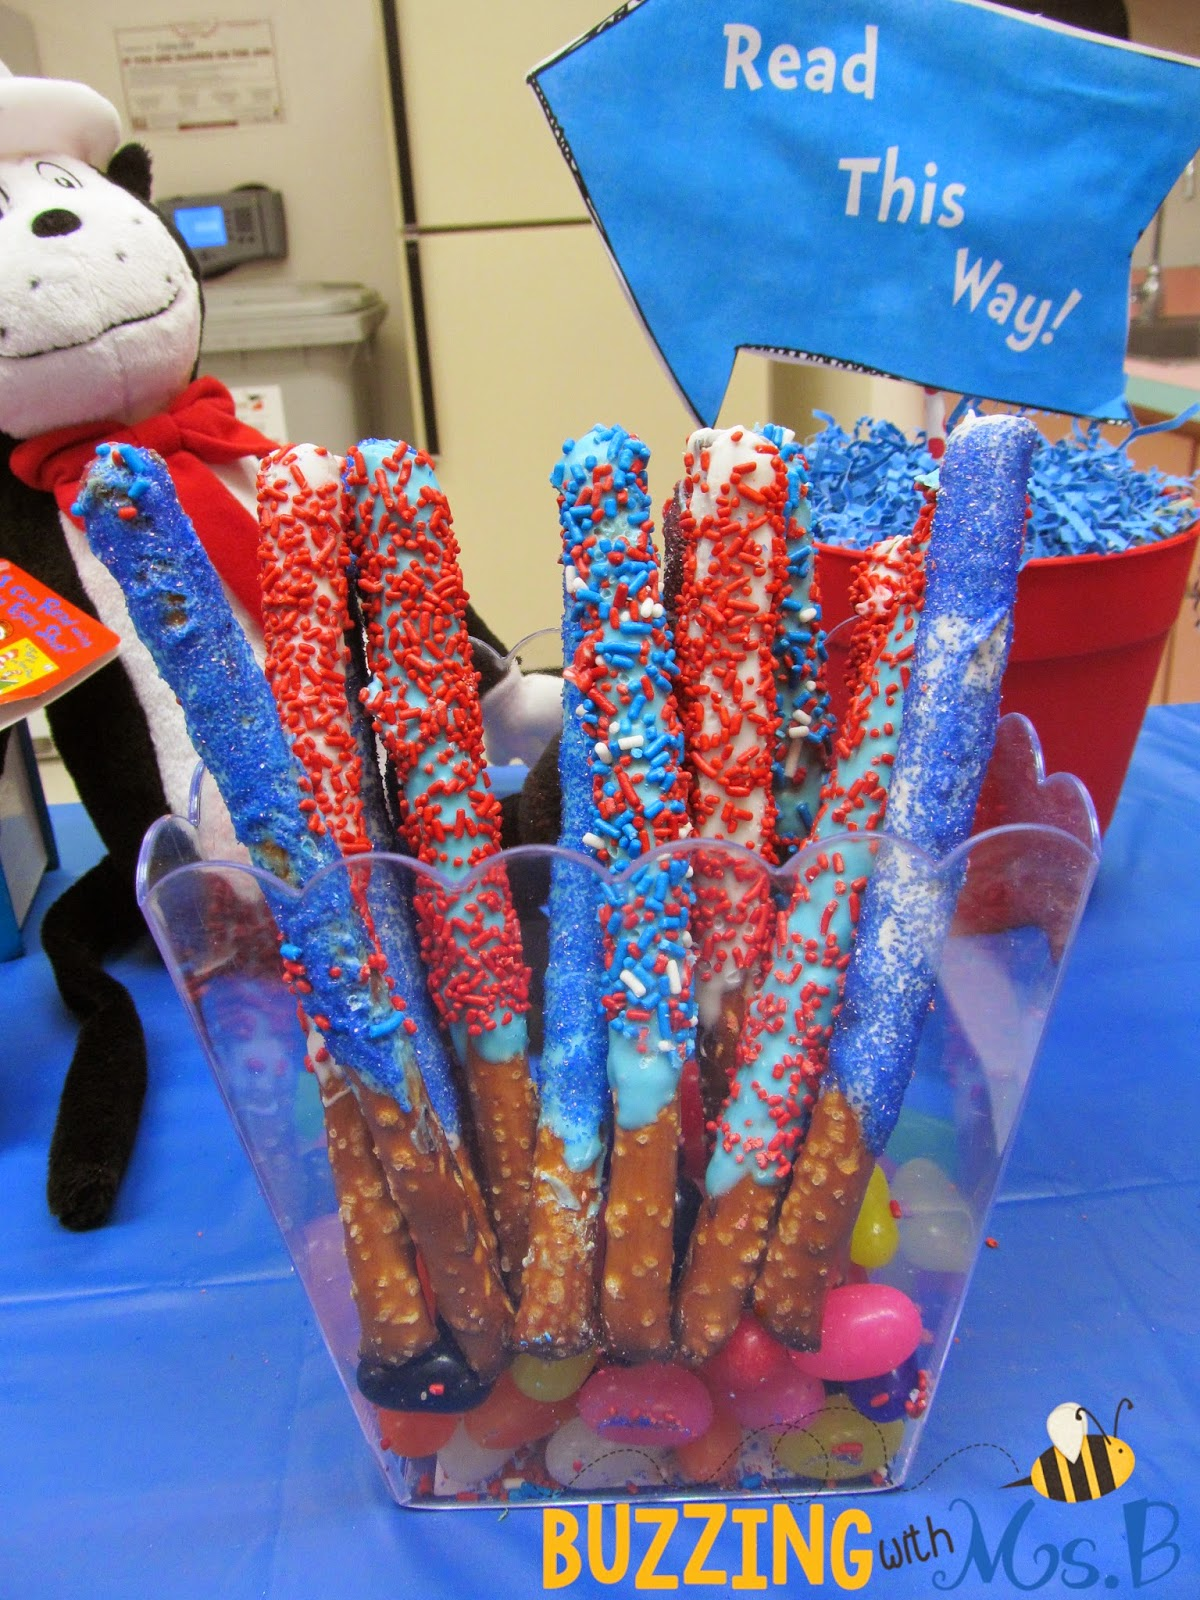 http://buzzingwithmsb.blogspot.com/2015/02/seuss-snacks-read-across-america-snacks.html